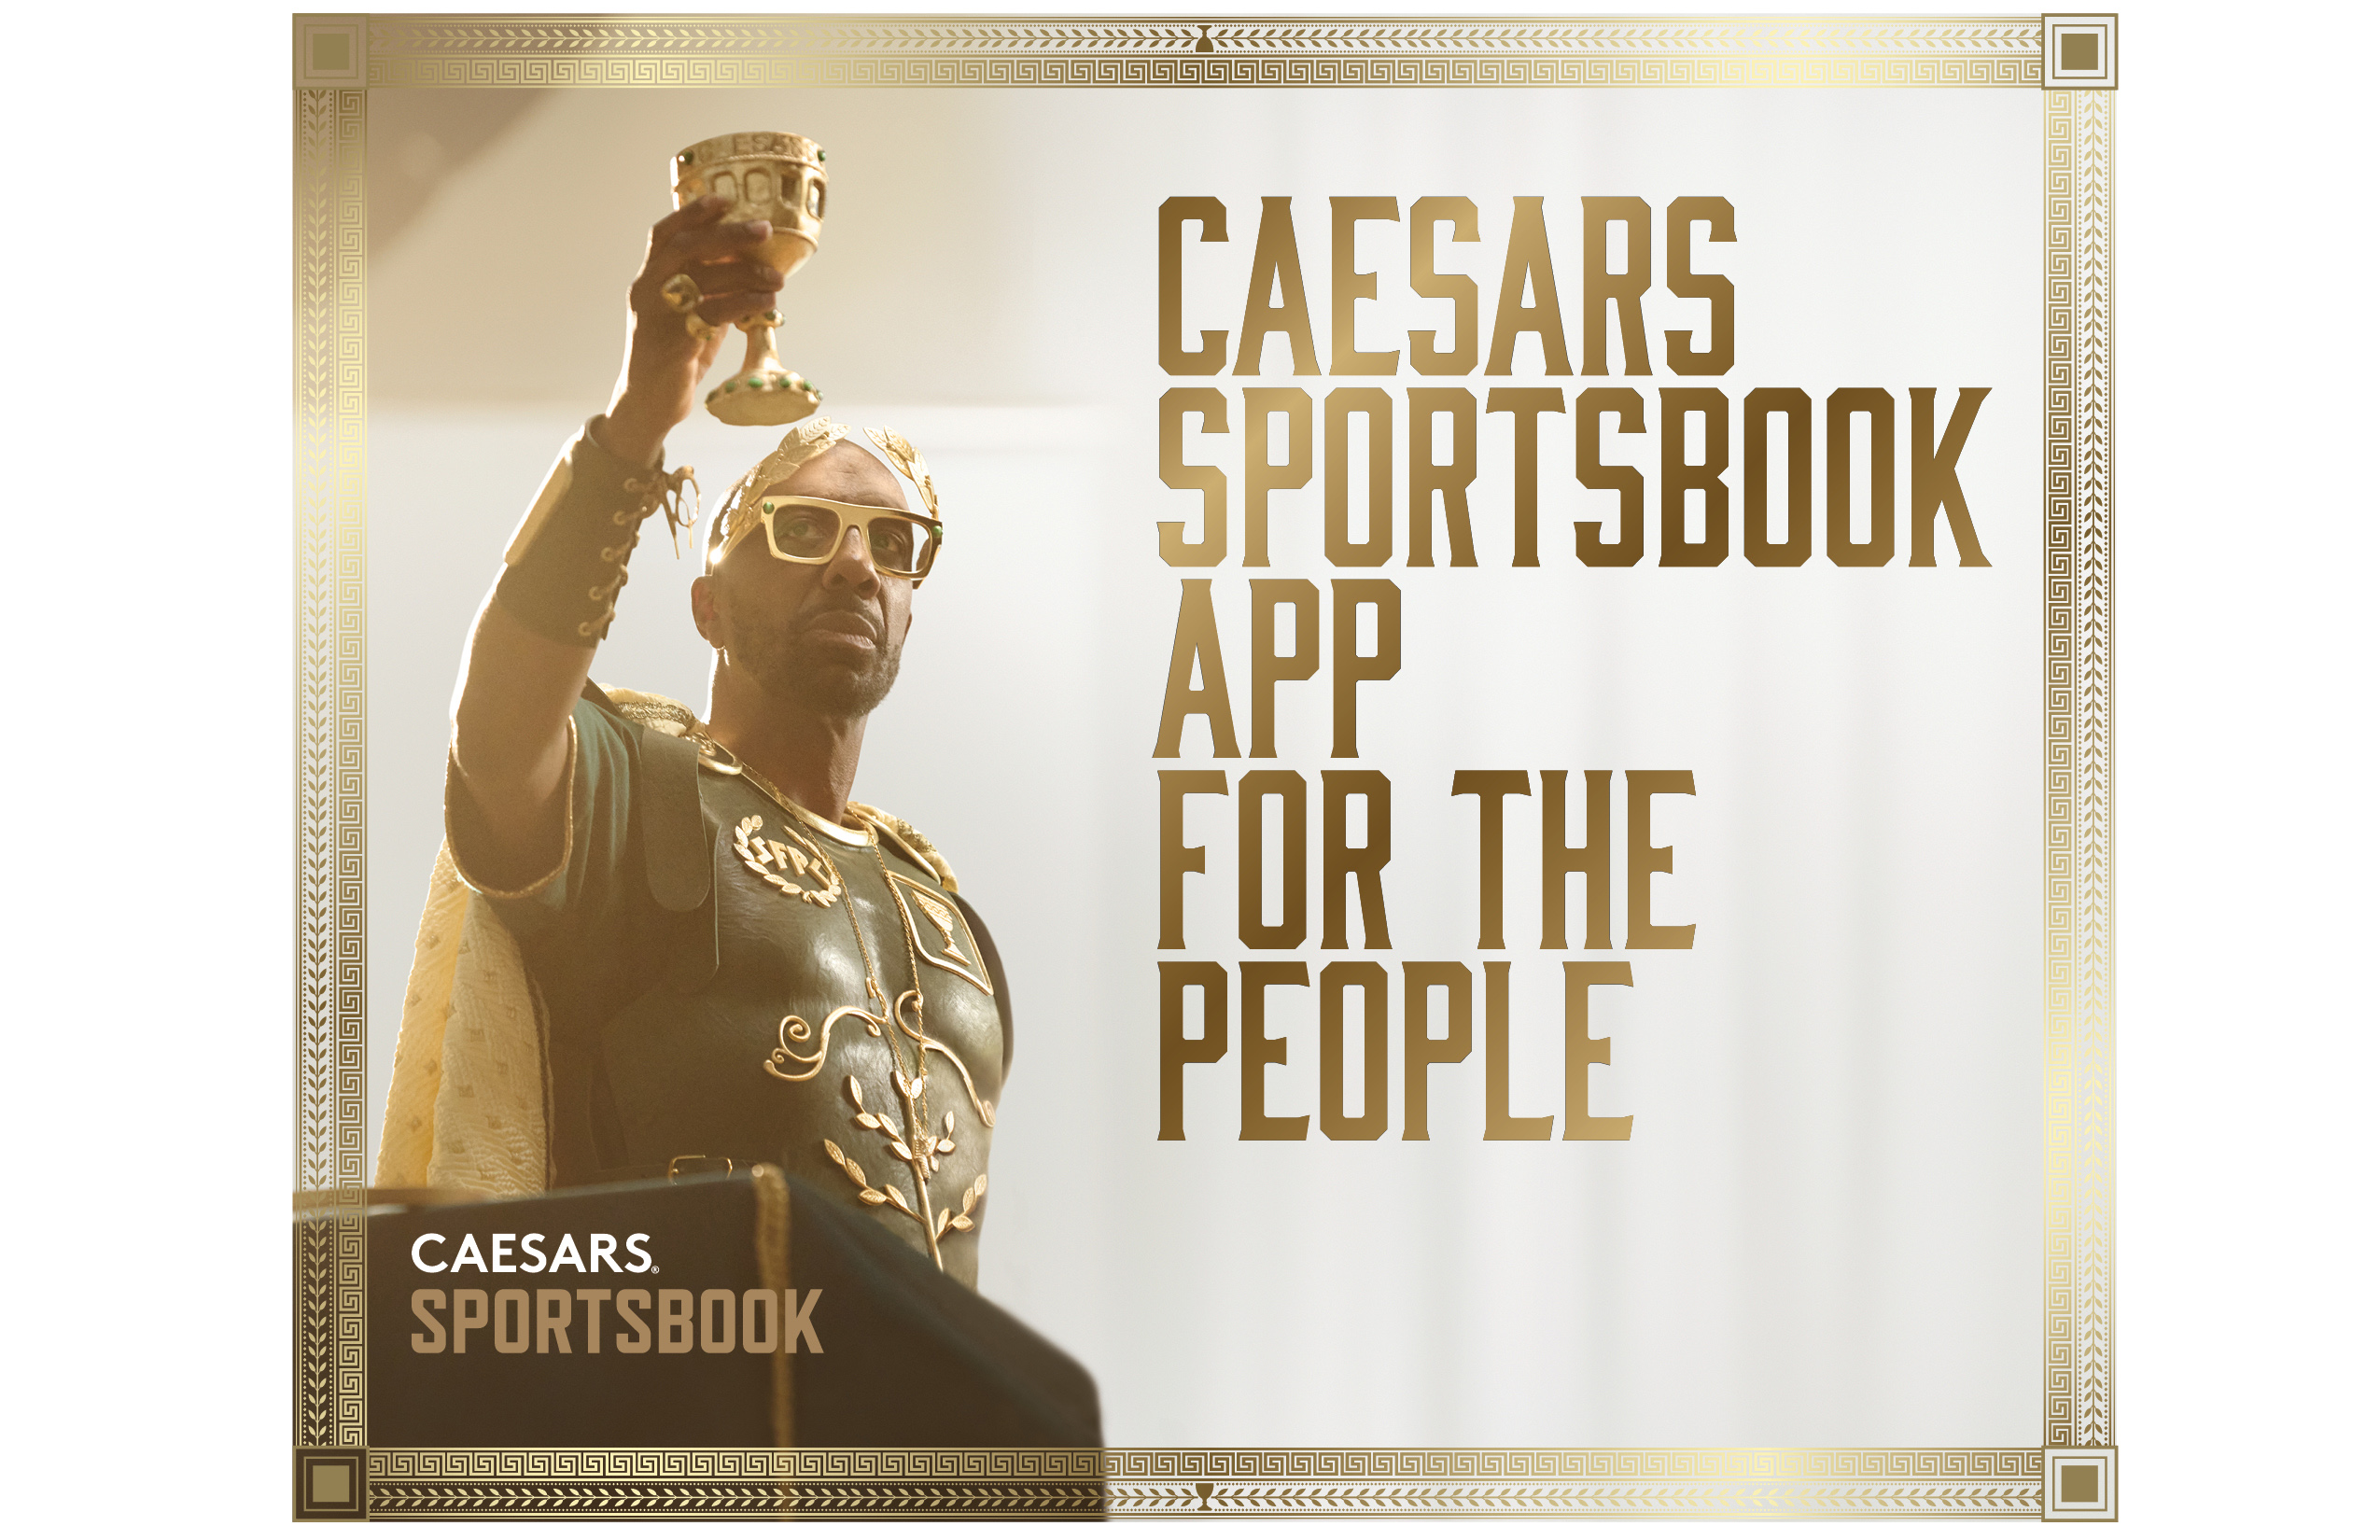 Caesars Sportsbook is the app for the people, Caesar raises his goblet.